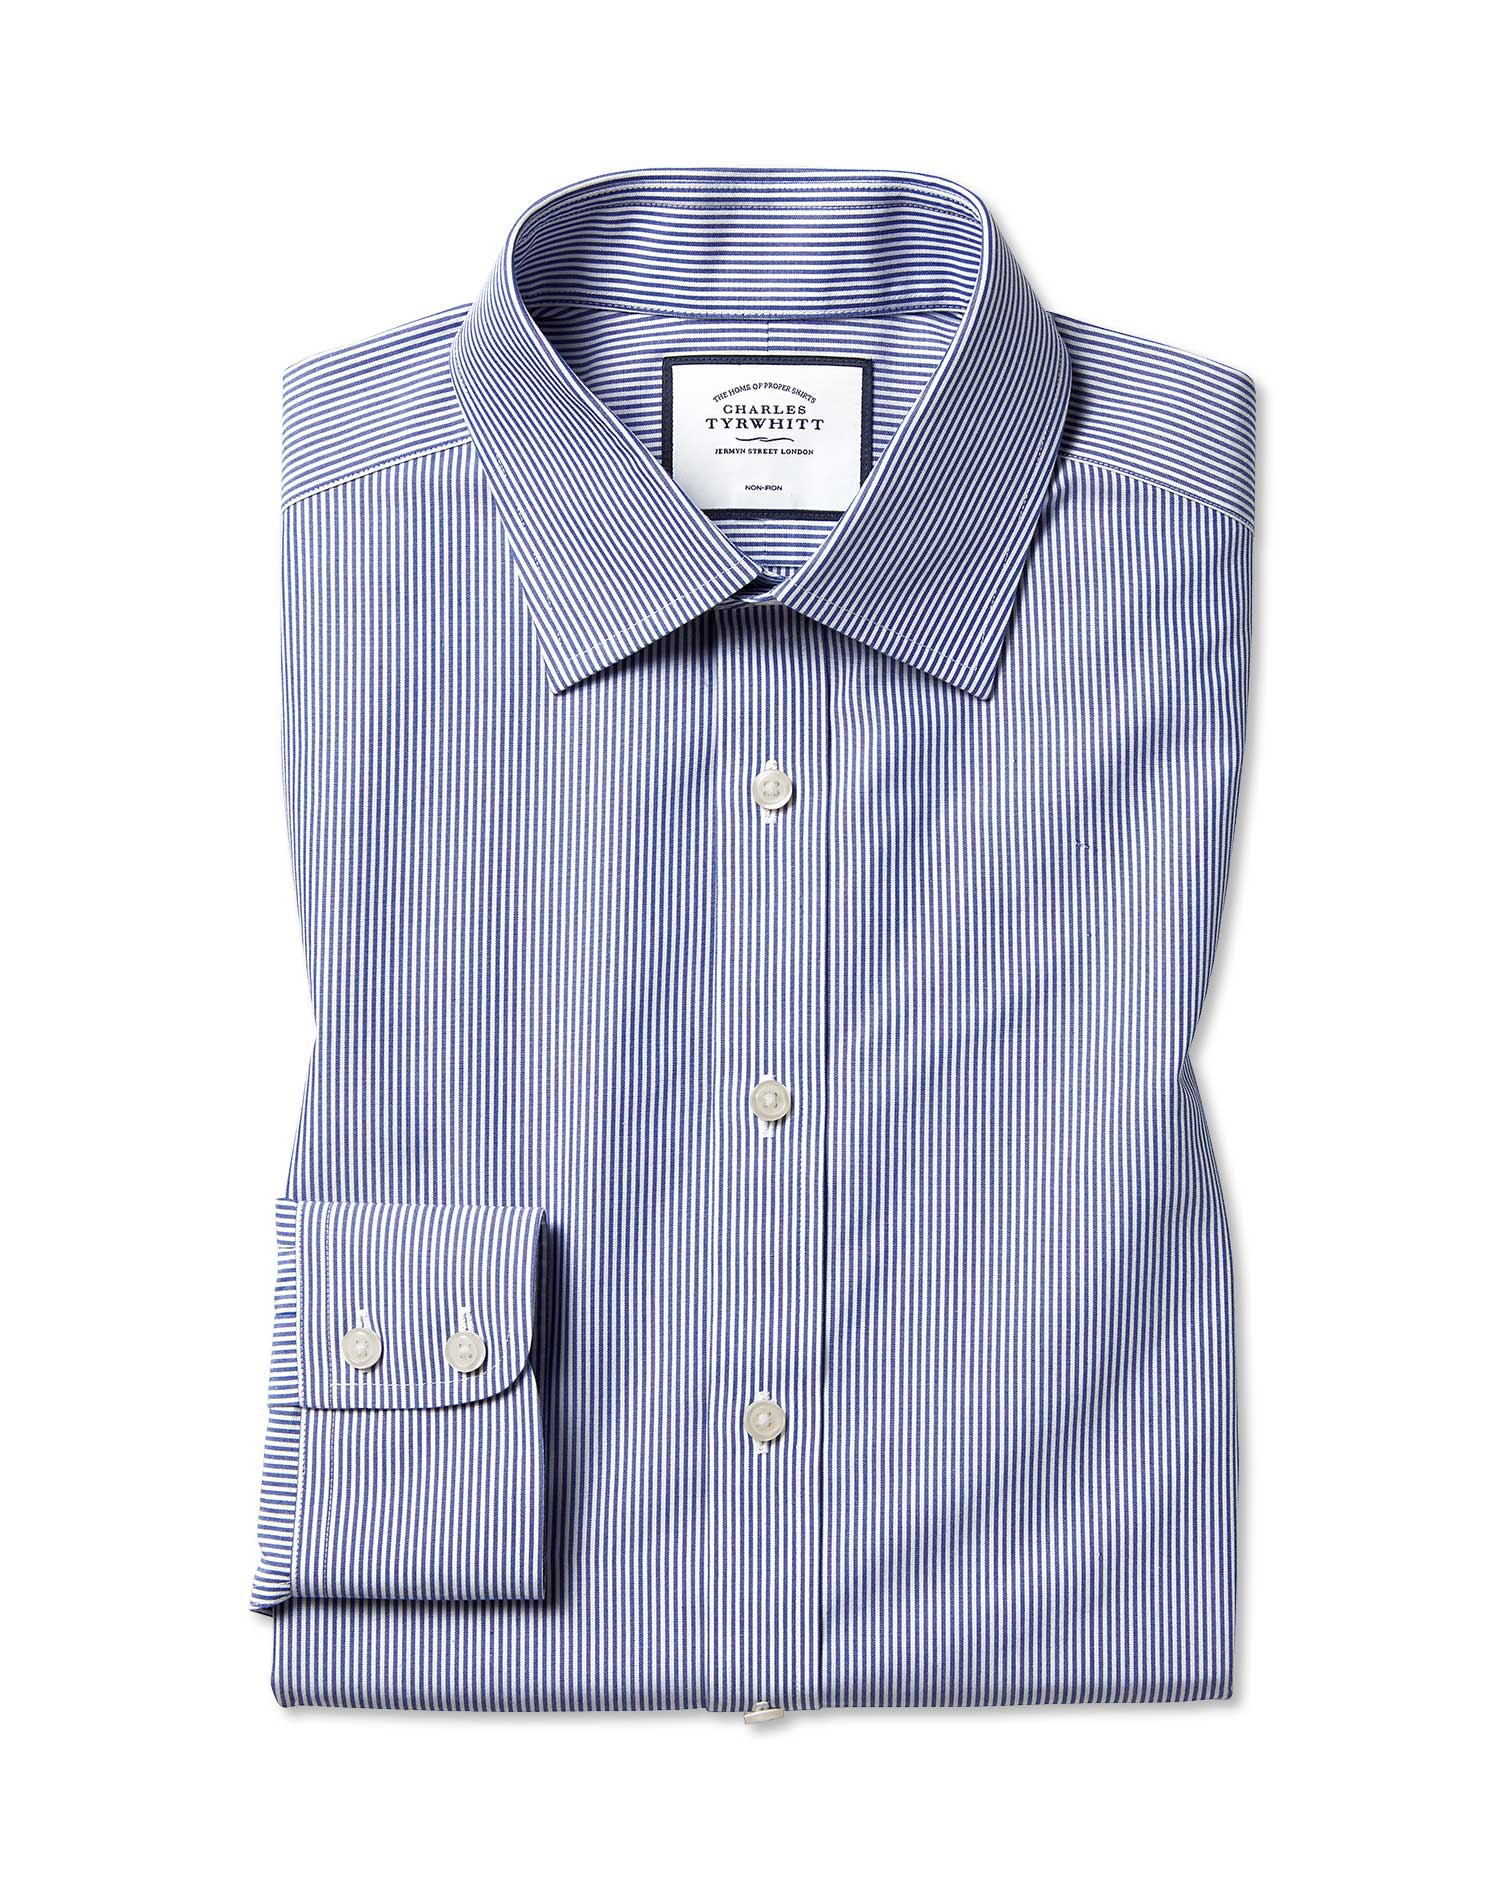 Classic Fit Non-Iron Navy Bengal Stripe Cotton Formal Shirt Double Cuff Size 19/37 by Charles Tyrwhi